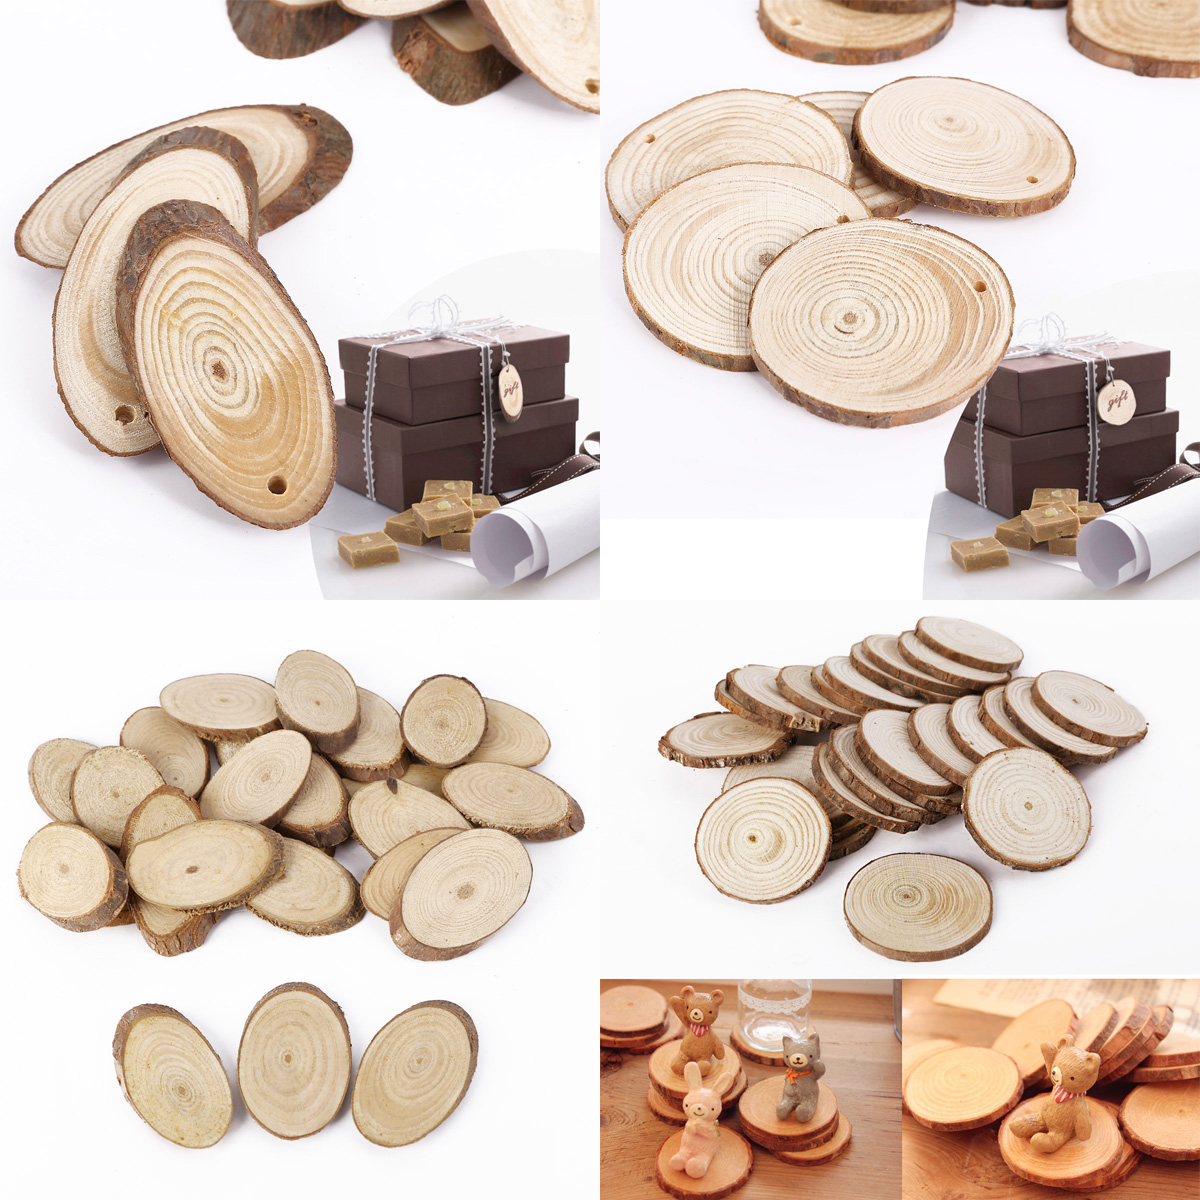 Wooden Bark Tree Slices Round Shaped Wood Craft Paint Scene many patterns